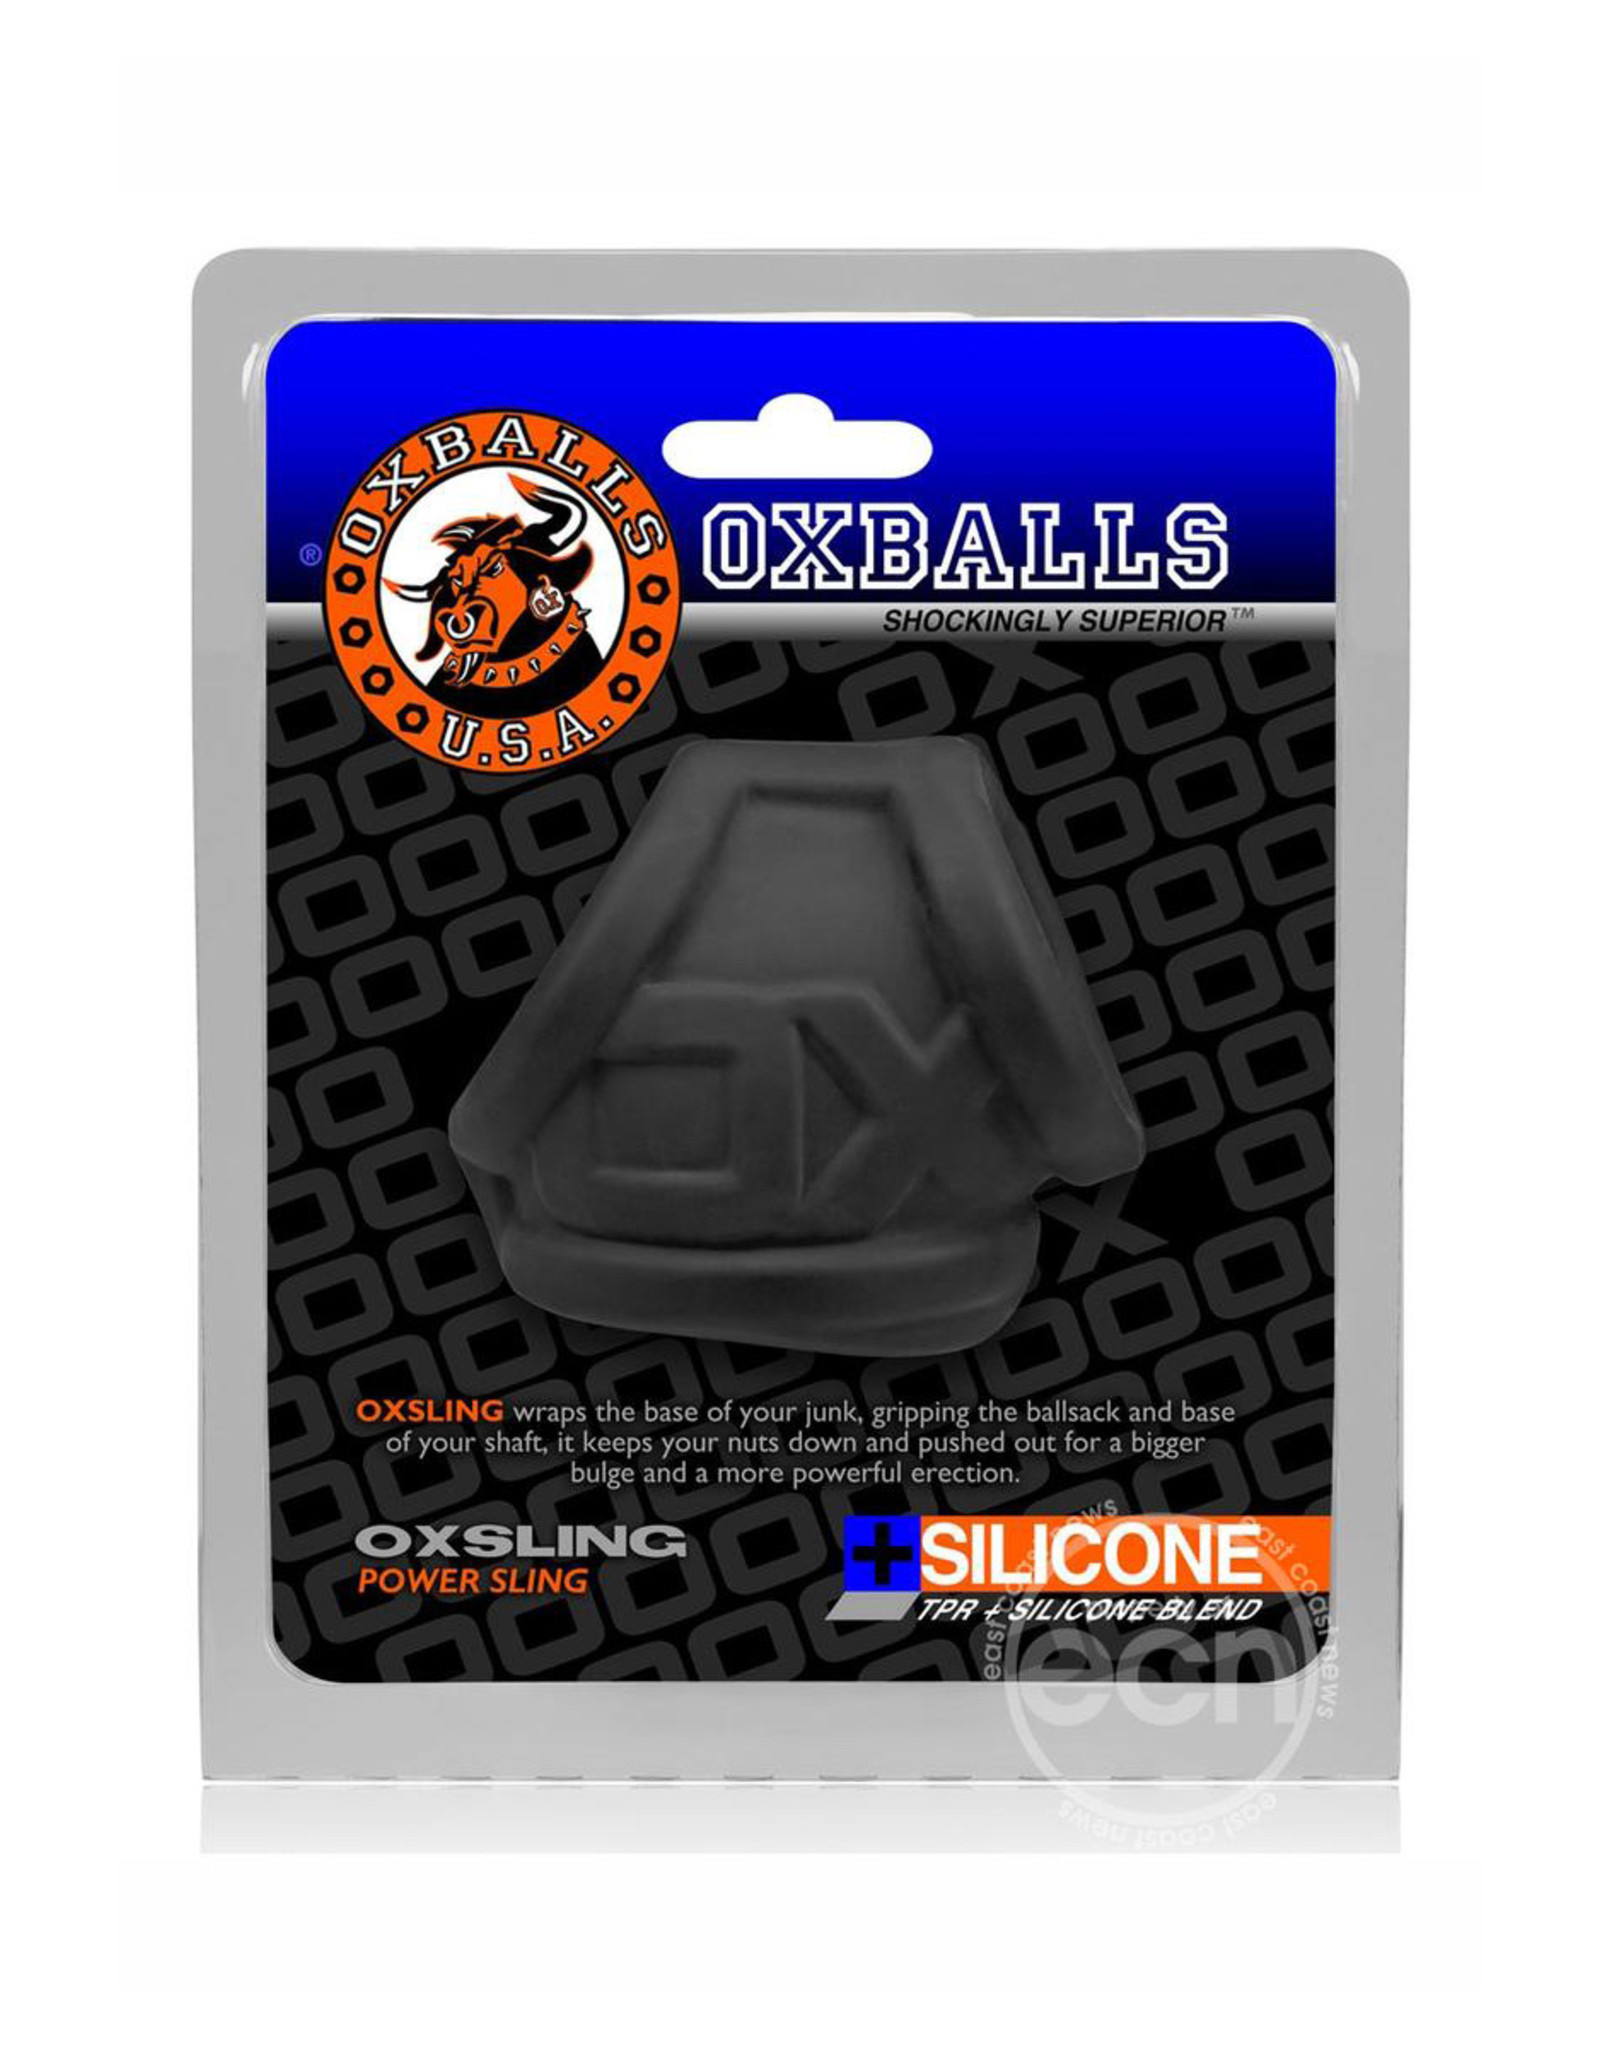 OxBalls Oxsling Silicone